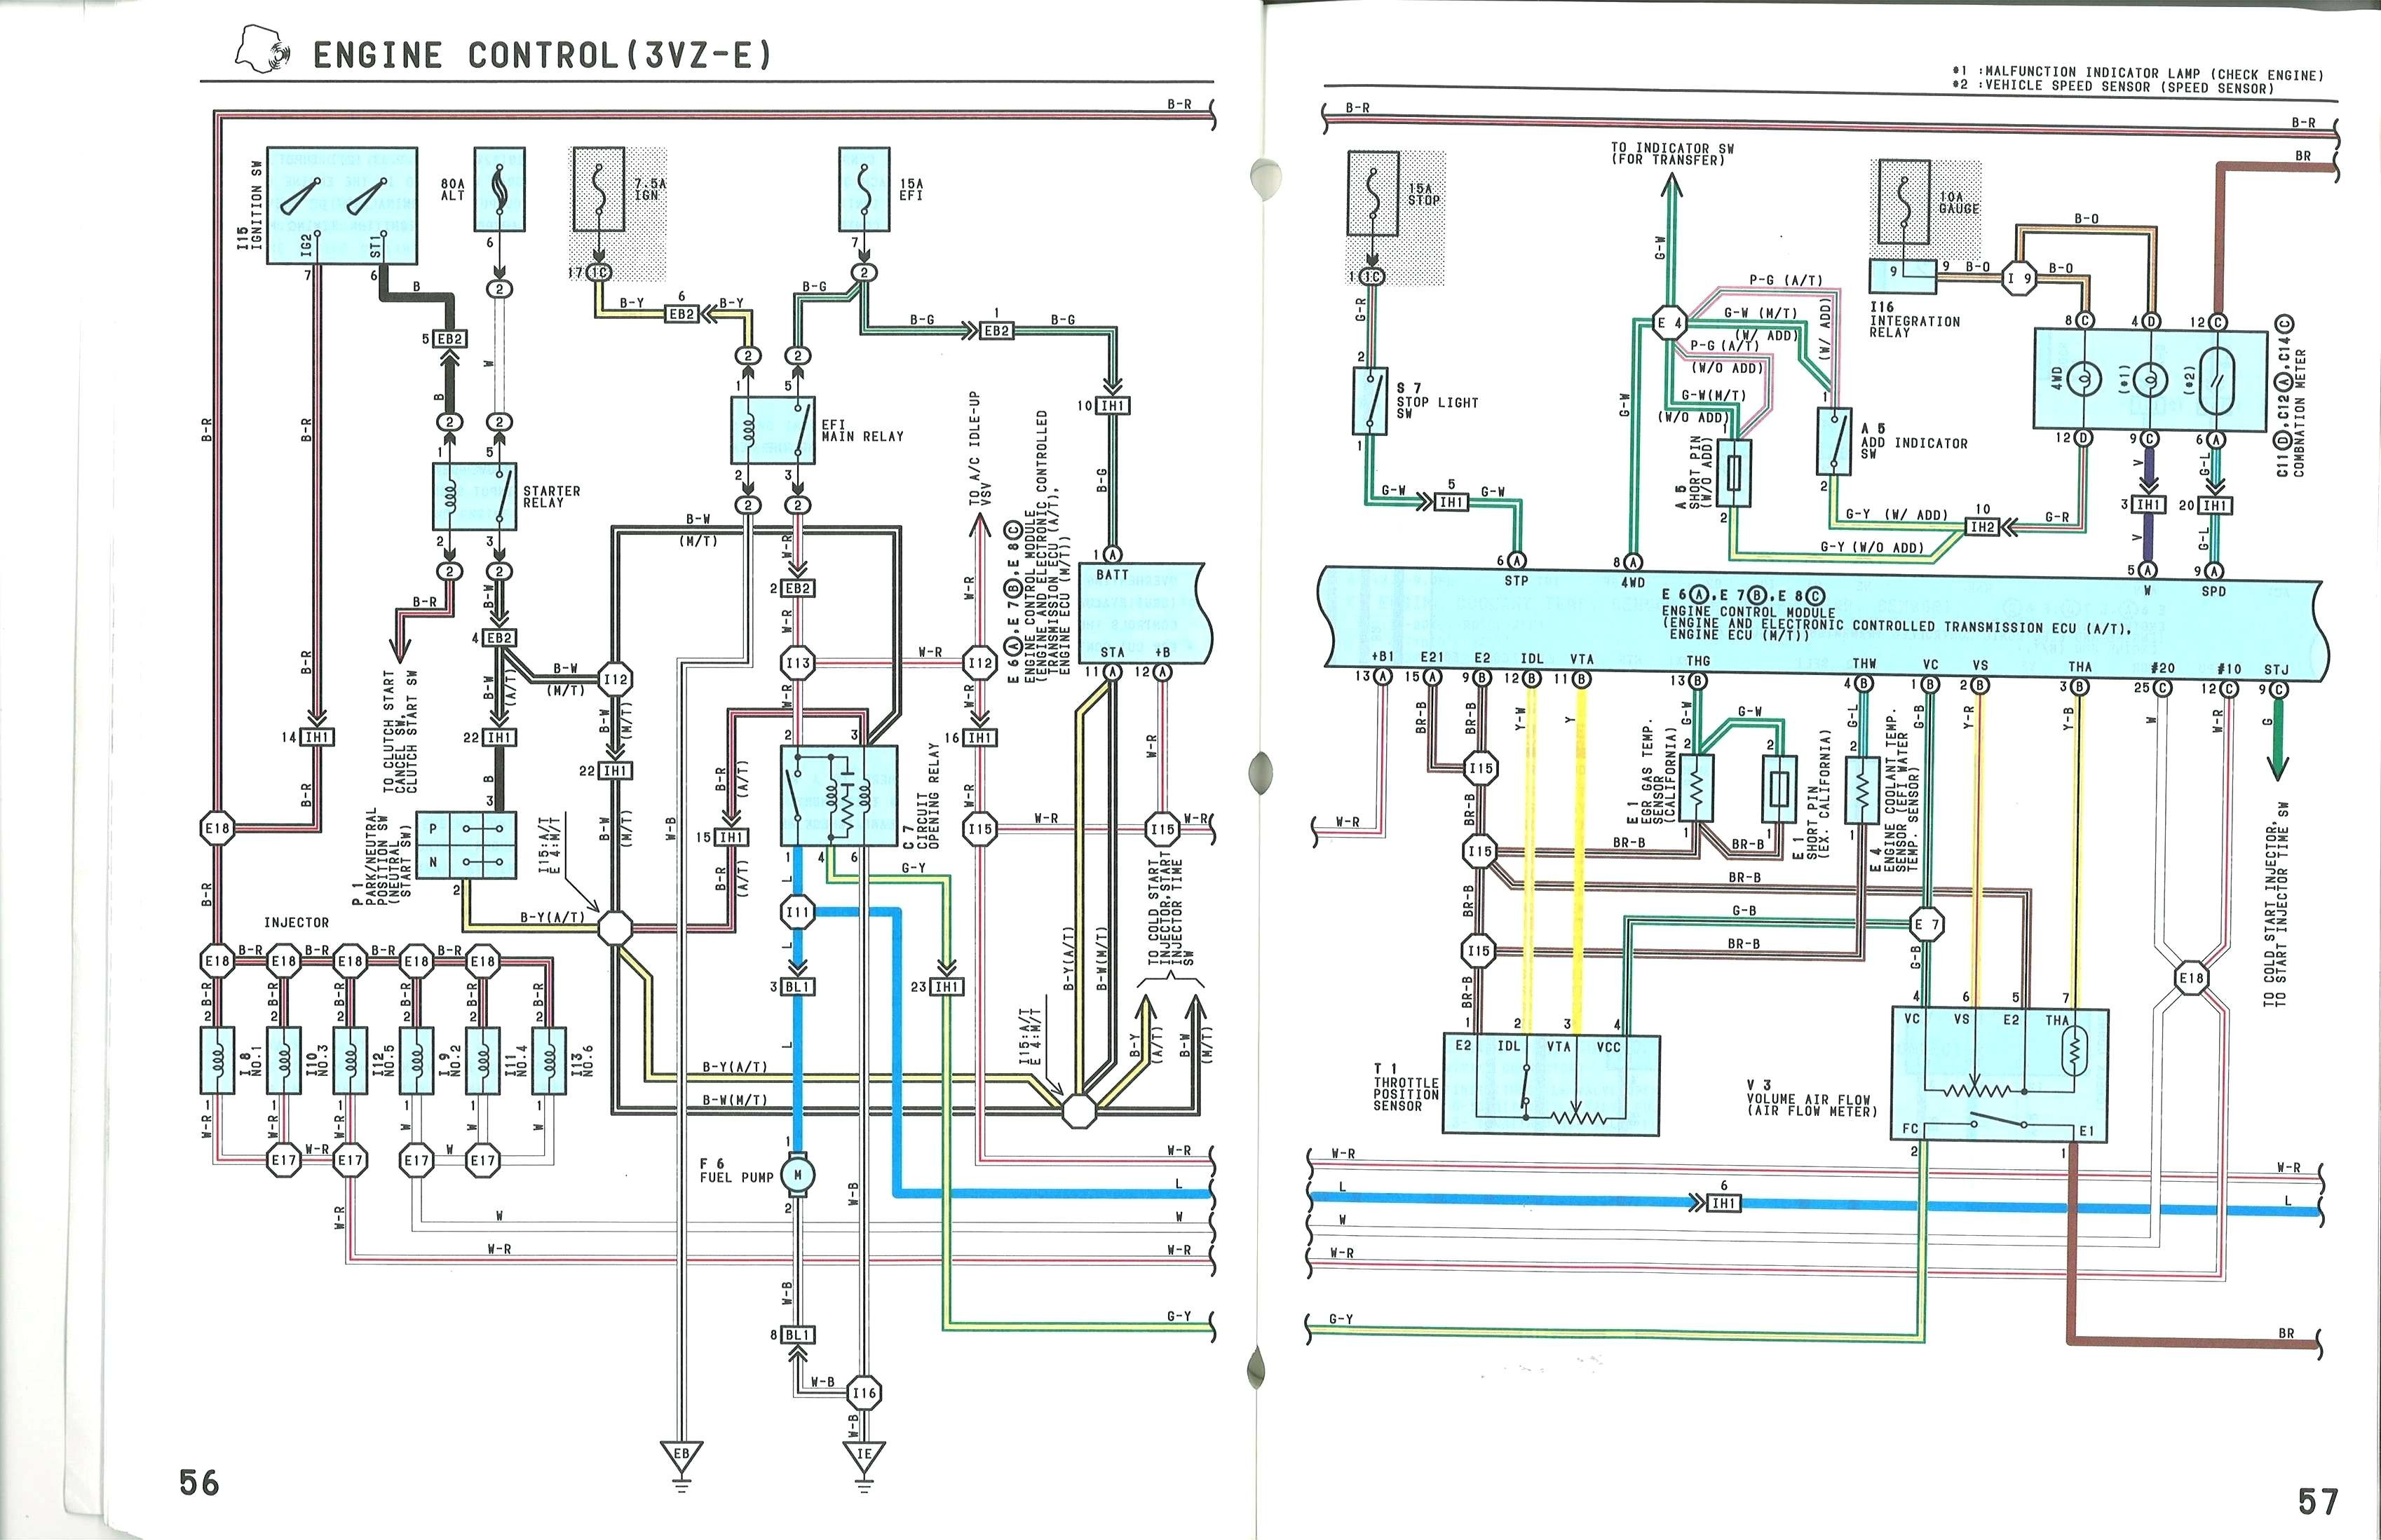 1973 toyota pickup engine diagram wiring diagram page 1988 Toyota Pickup Engine Coolant Hose Diagram